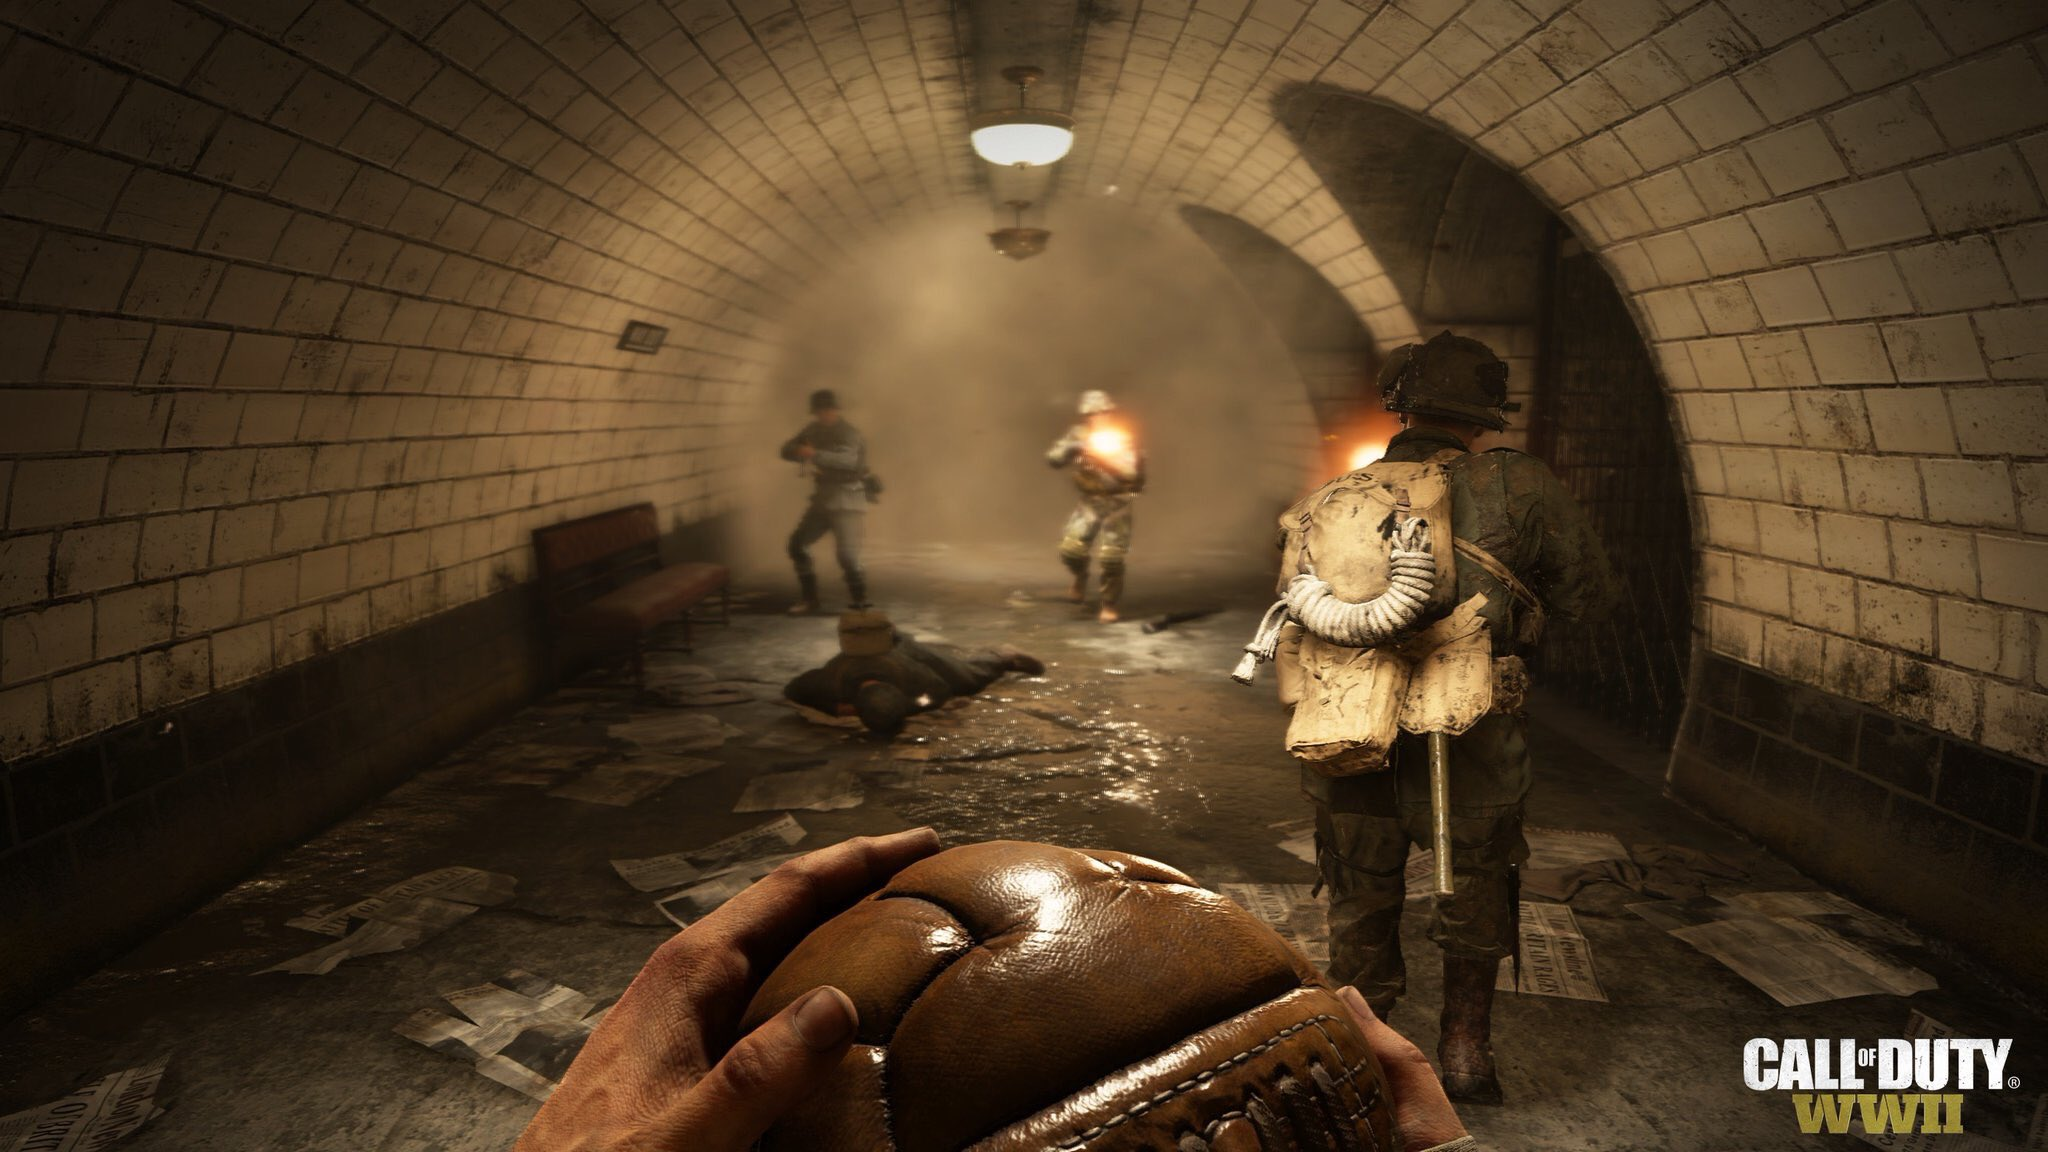 Gridiron is the new Uplink in Call of Duty: WW2, new London map revealed